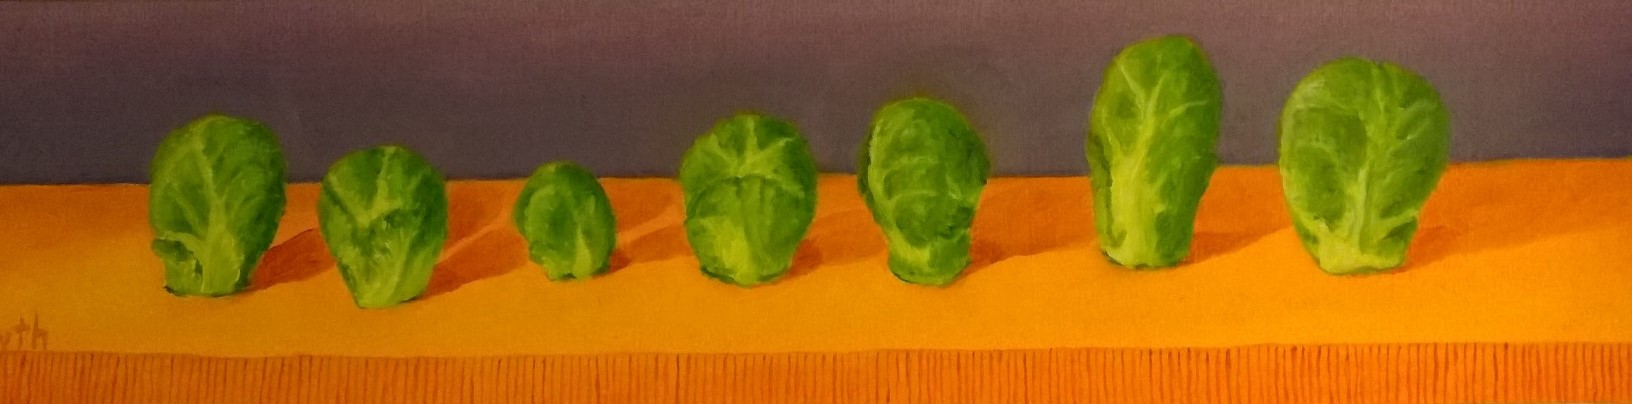 A Row of Brussel Sprouts